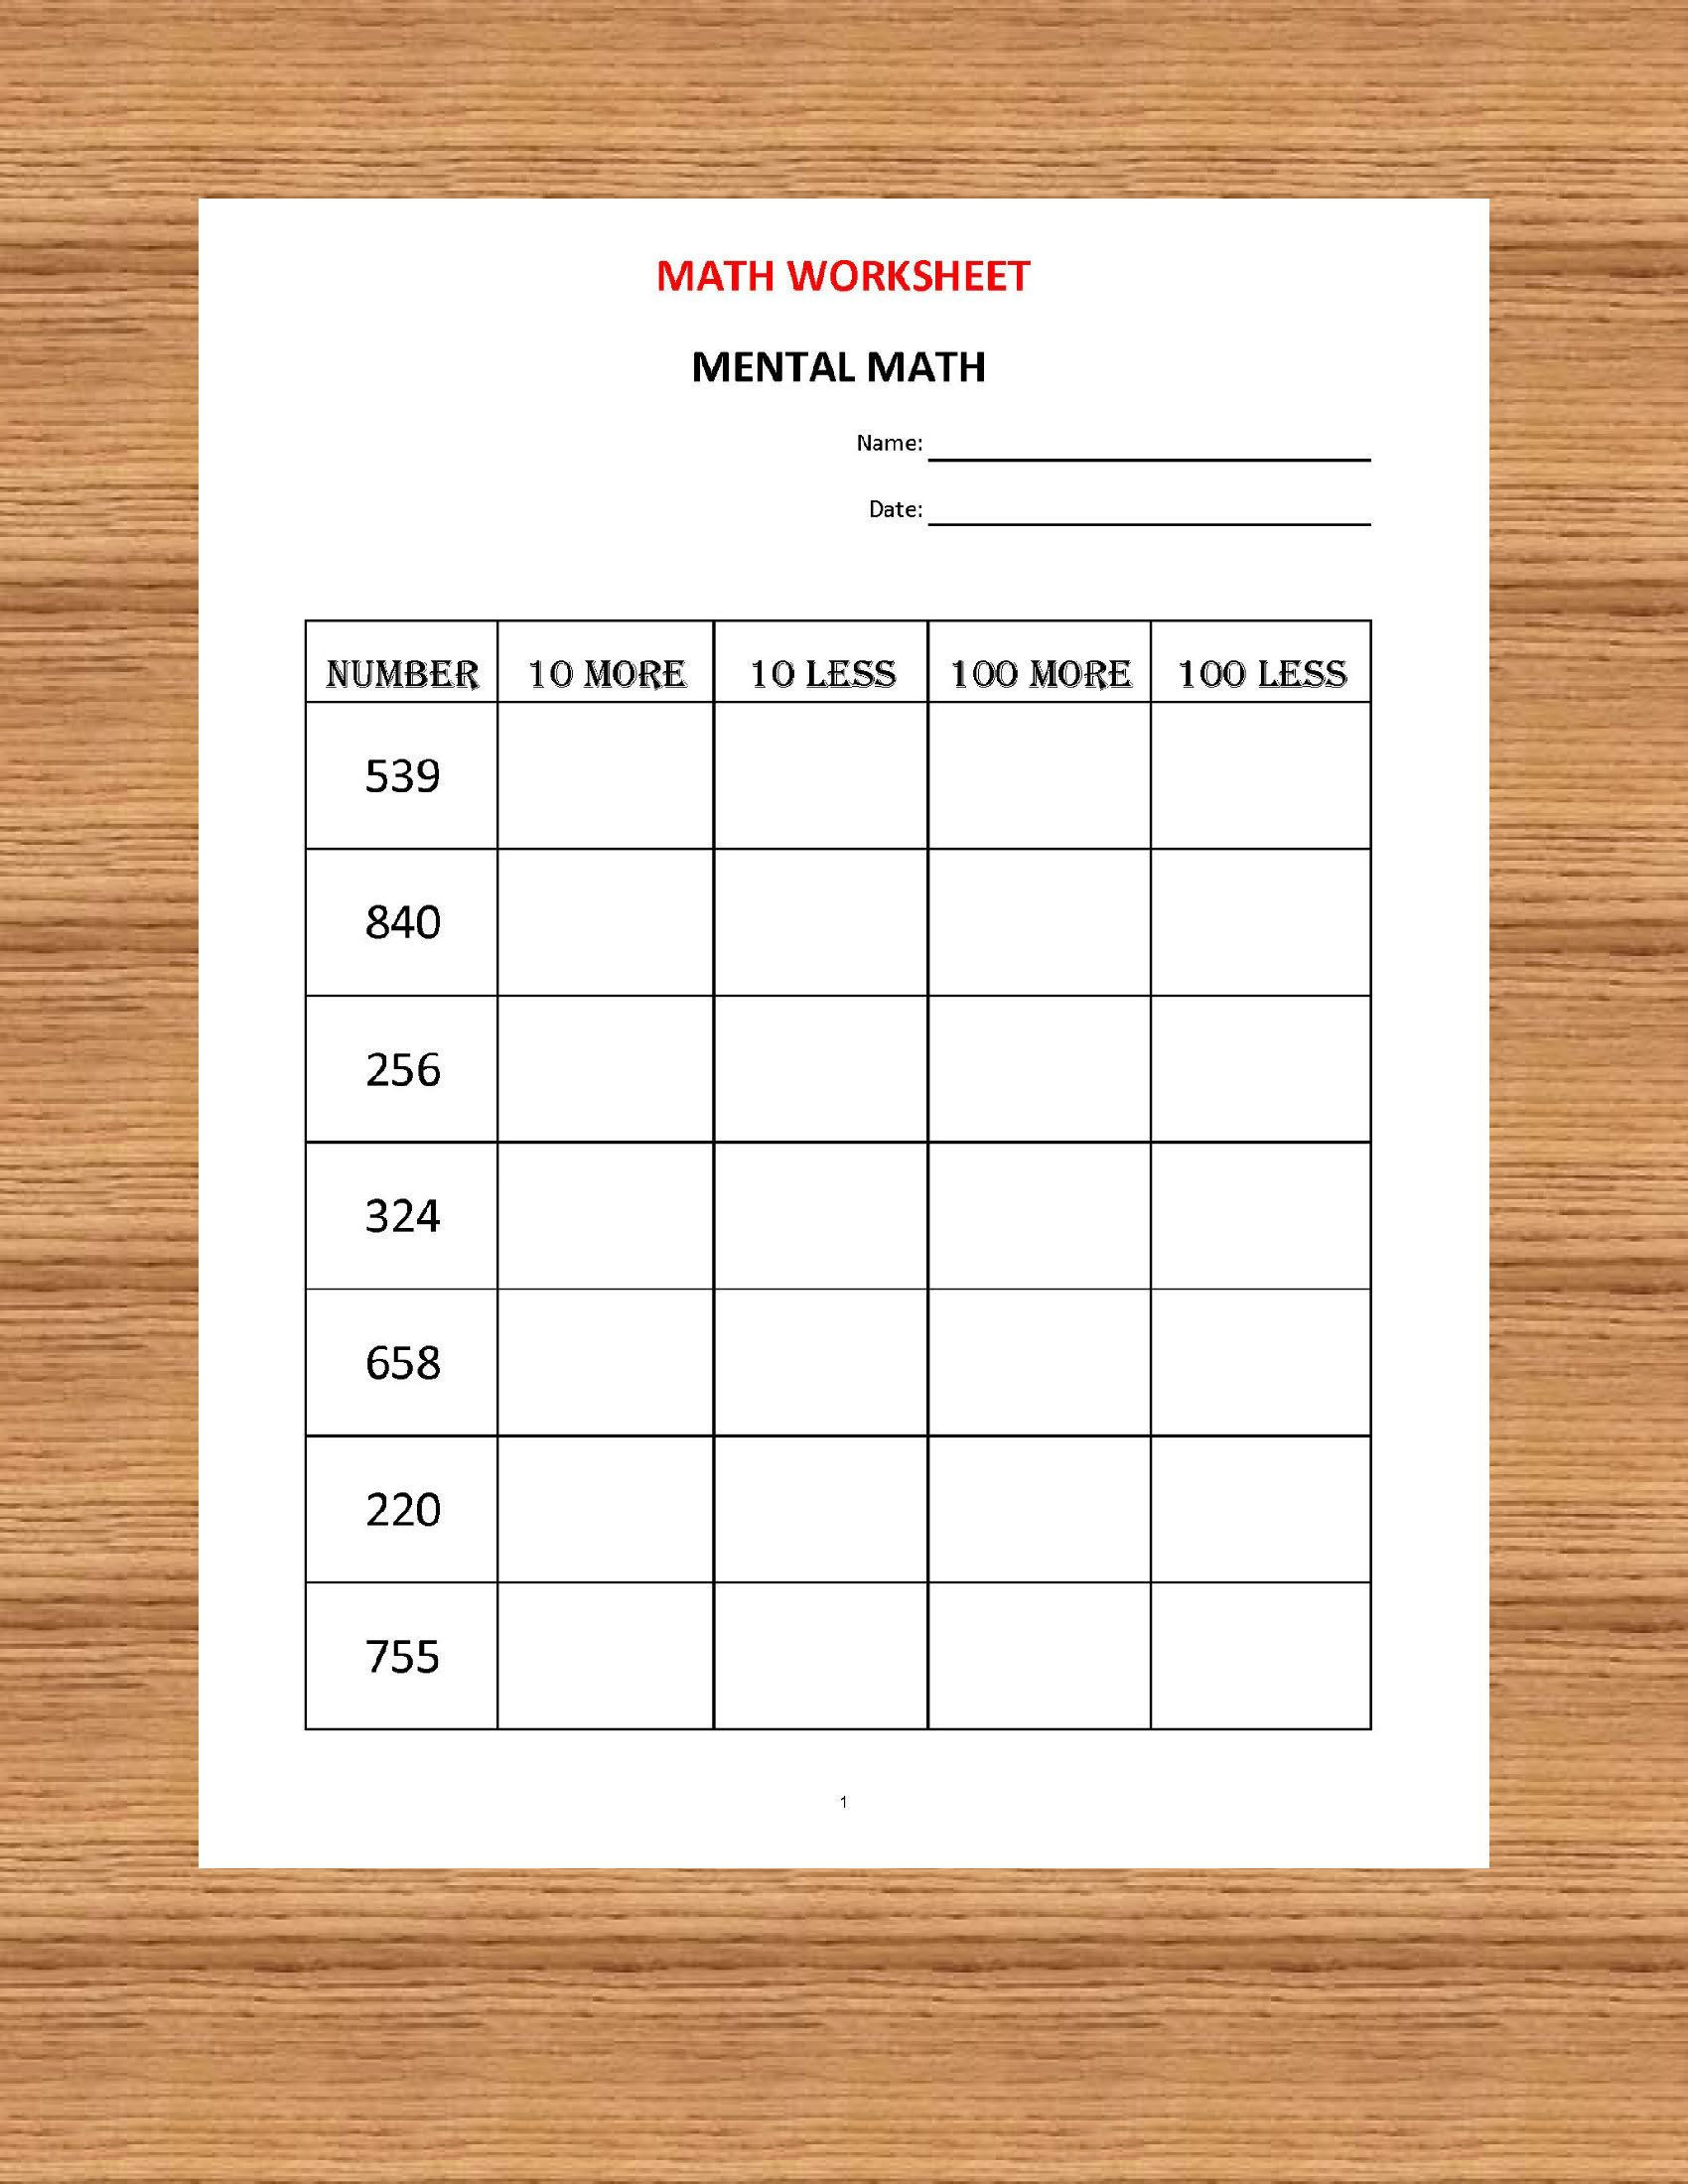 Life Skills Math Worksheets Pdf Mental Math 10 Math Worksheets Pdf Kindergarten Year 1